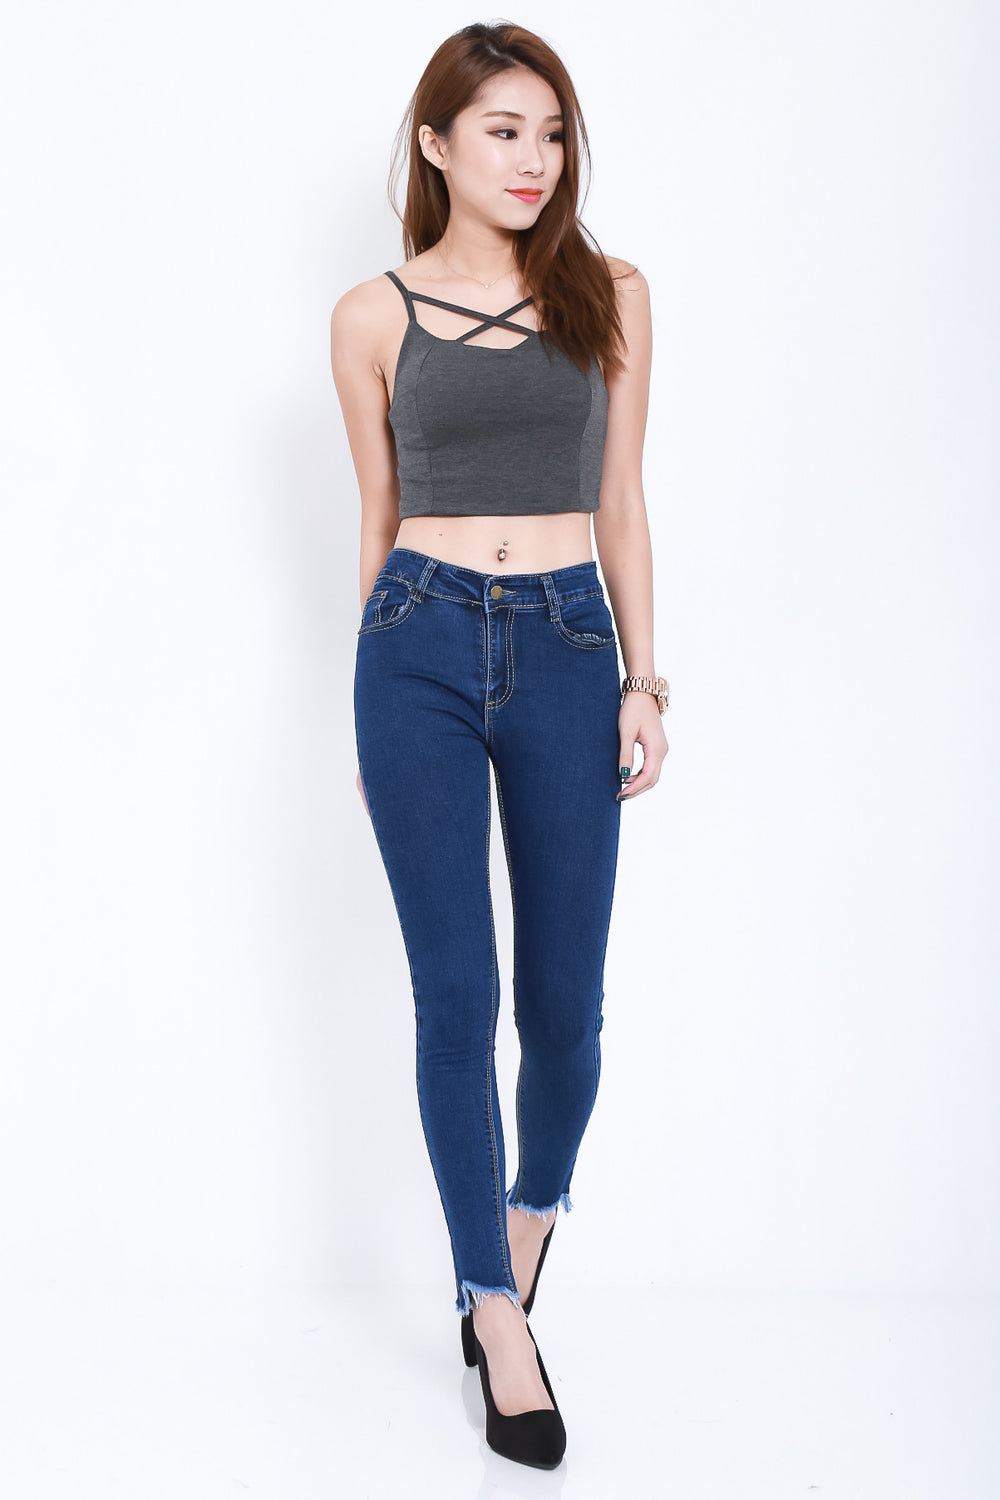 (RESTOCKED) EDNA TOP IN DARK GREY - TOPAZETTE